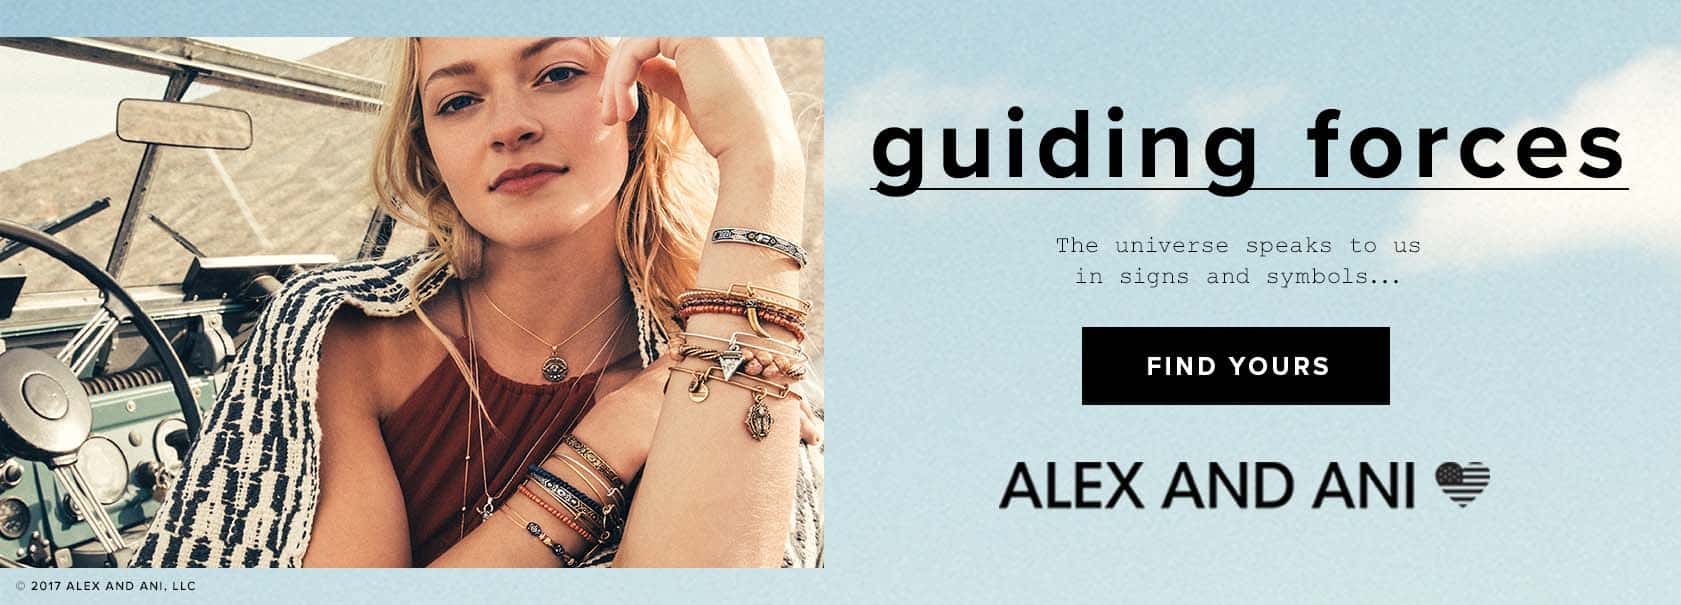 Alex and Ani 1